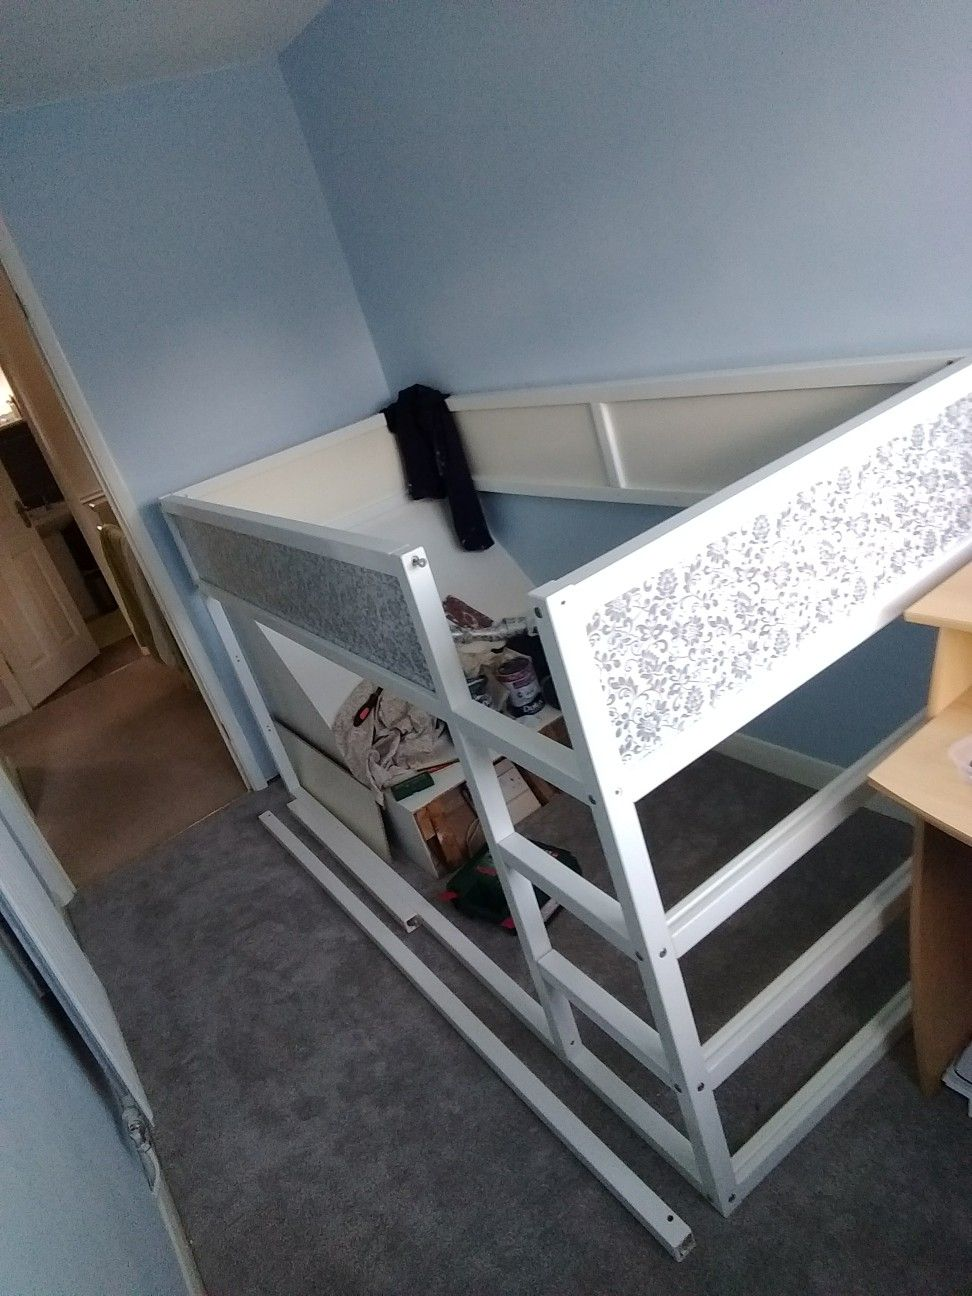 Start Of An Ikea Kura Bed Hack To Cover A Stair Bulkhead In Very Small Bedroom Ikea Kura Bed Box Room Bedroom Ideas Stairs Bulkhead